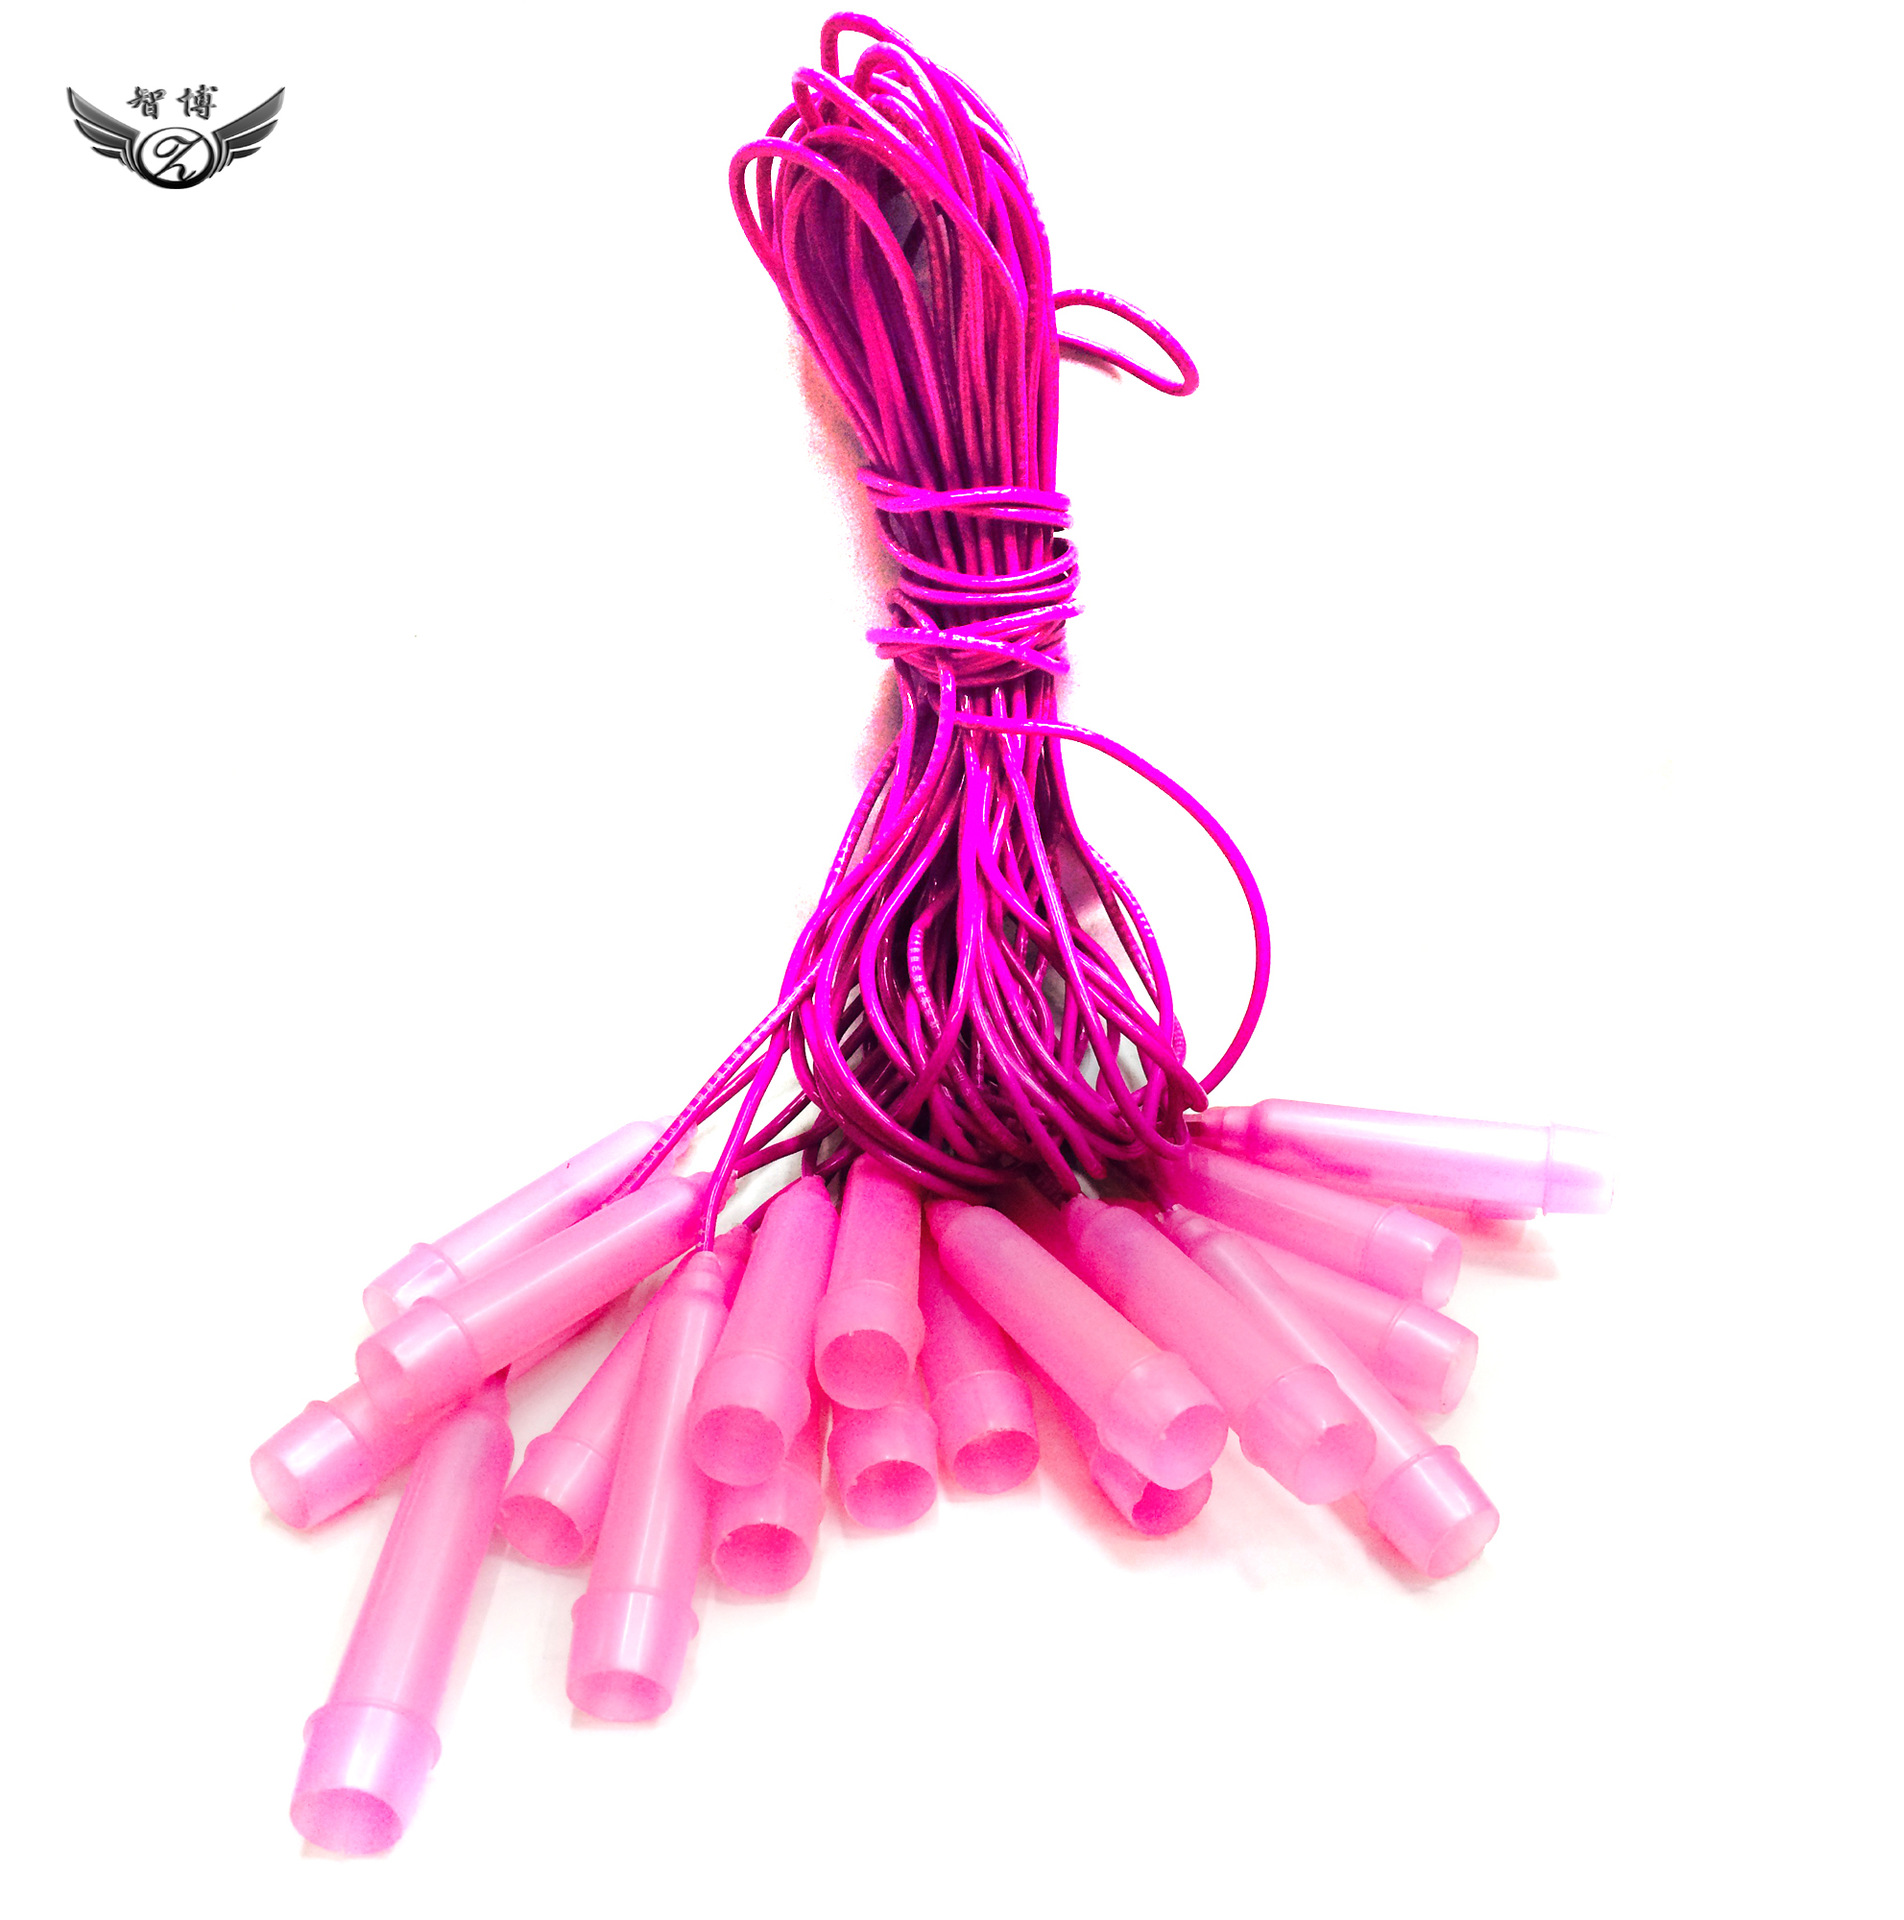 In Bulk Skipping Rope With Plastic Handle Zb01 Pink/Blue Extra-value Jump Rope Best Seller Genuine Product